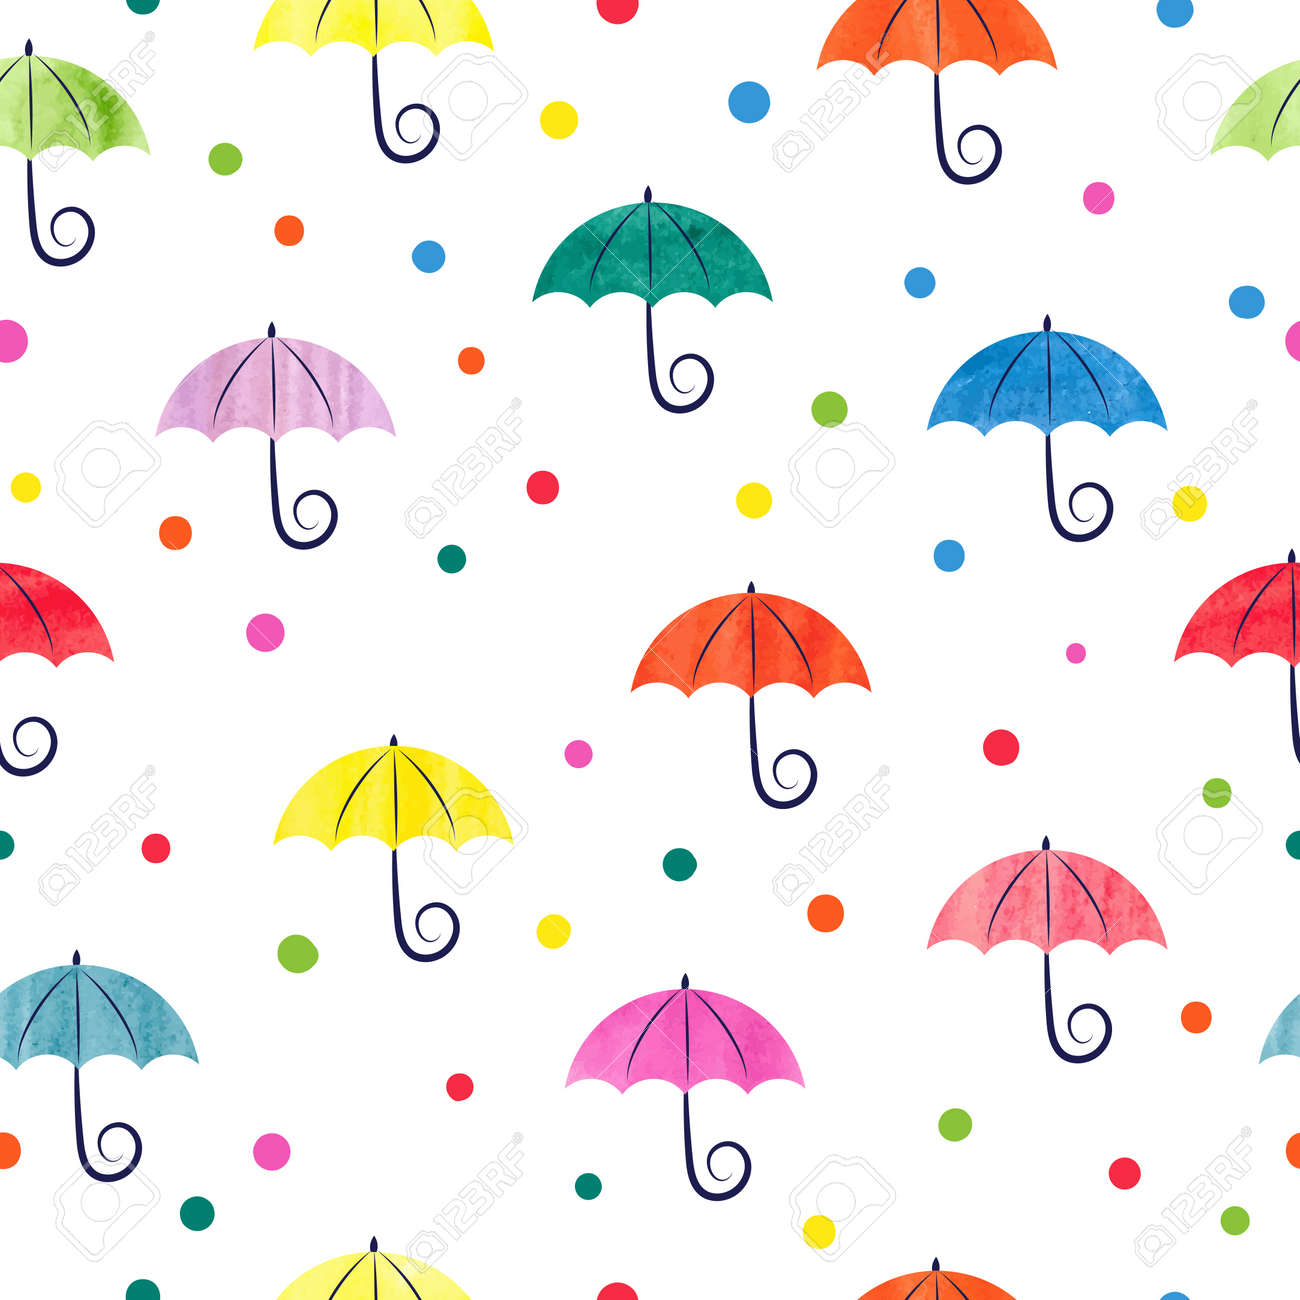 Watercolor Umbrellas Seamless Pattern Colorful Vector Illustration Suitable For Wallpaper Web Page Background